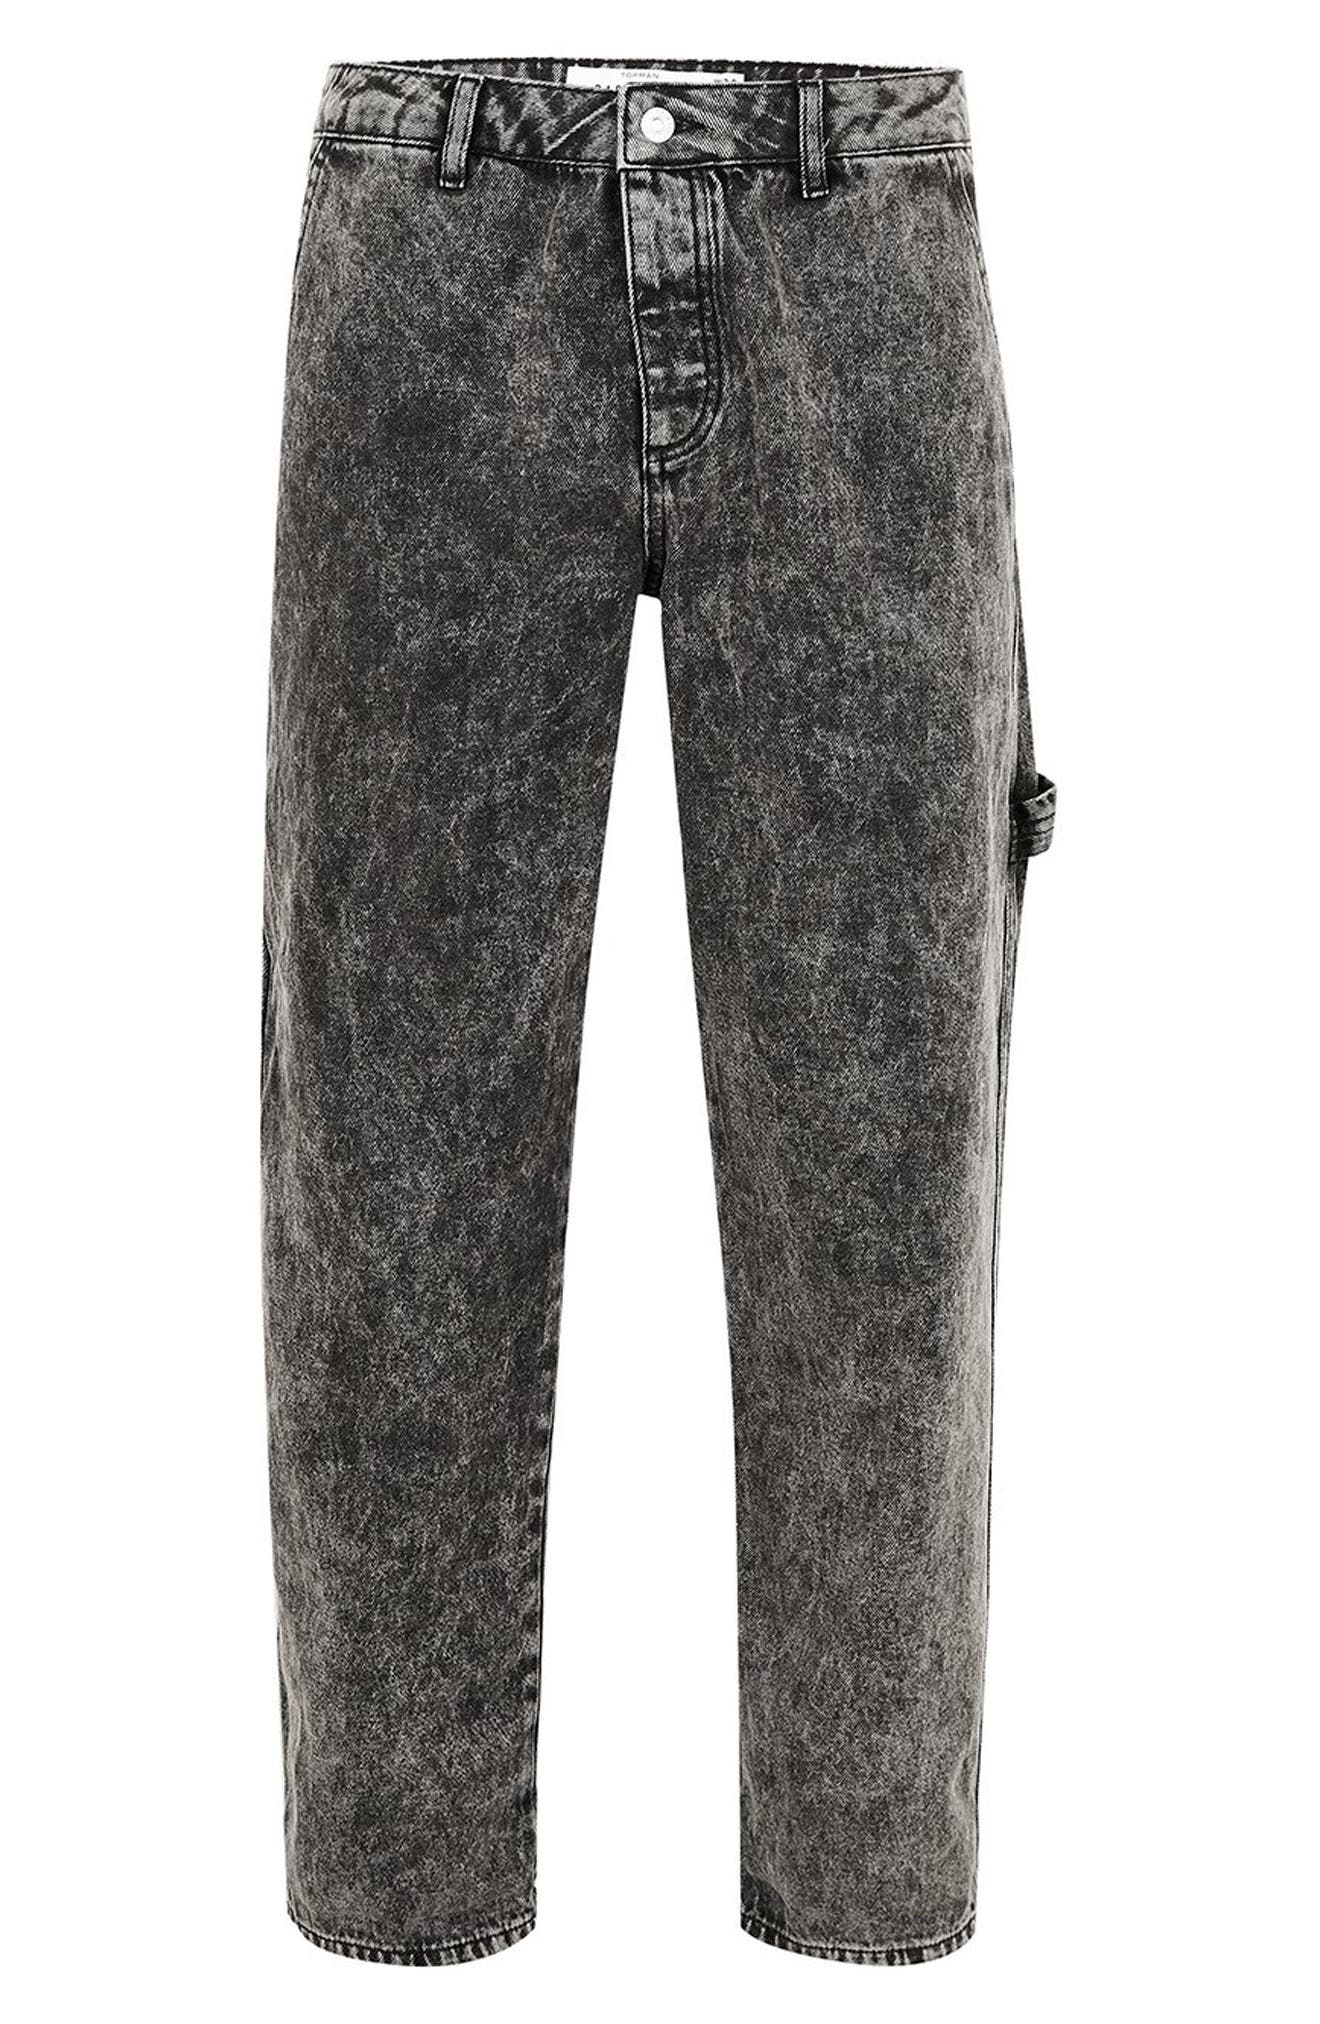 Acid Wash Classic Carpenter Jeans,                             Alternate thumbnail 5, color,                             GREY